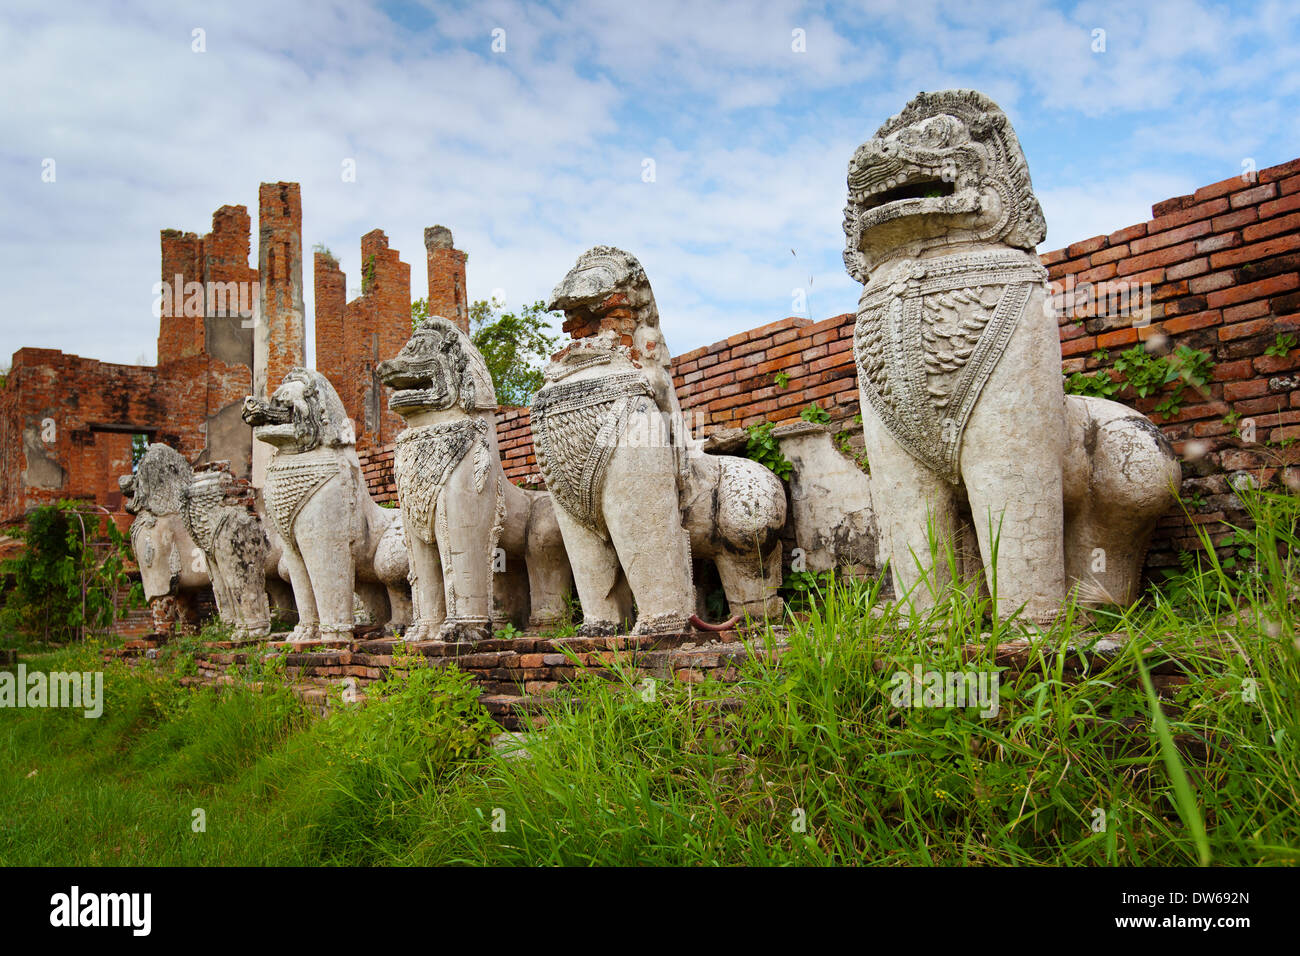 Stone mythical creatures like lions in the ruins of an ancient temple. Thailand, Ayuthaya - Stock Image